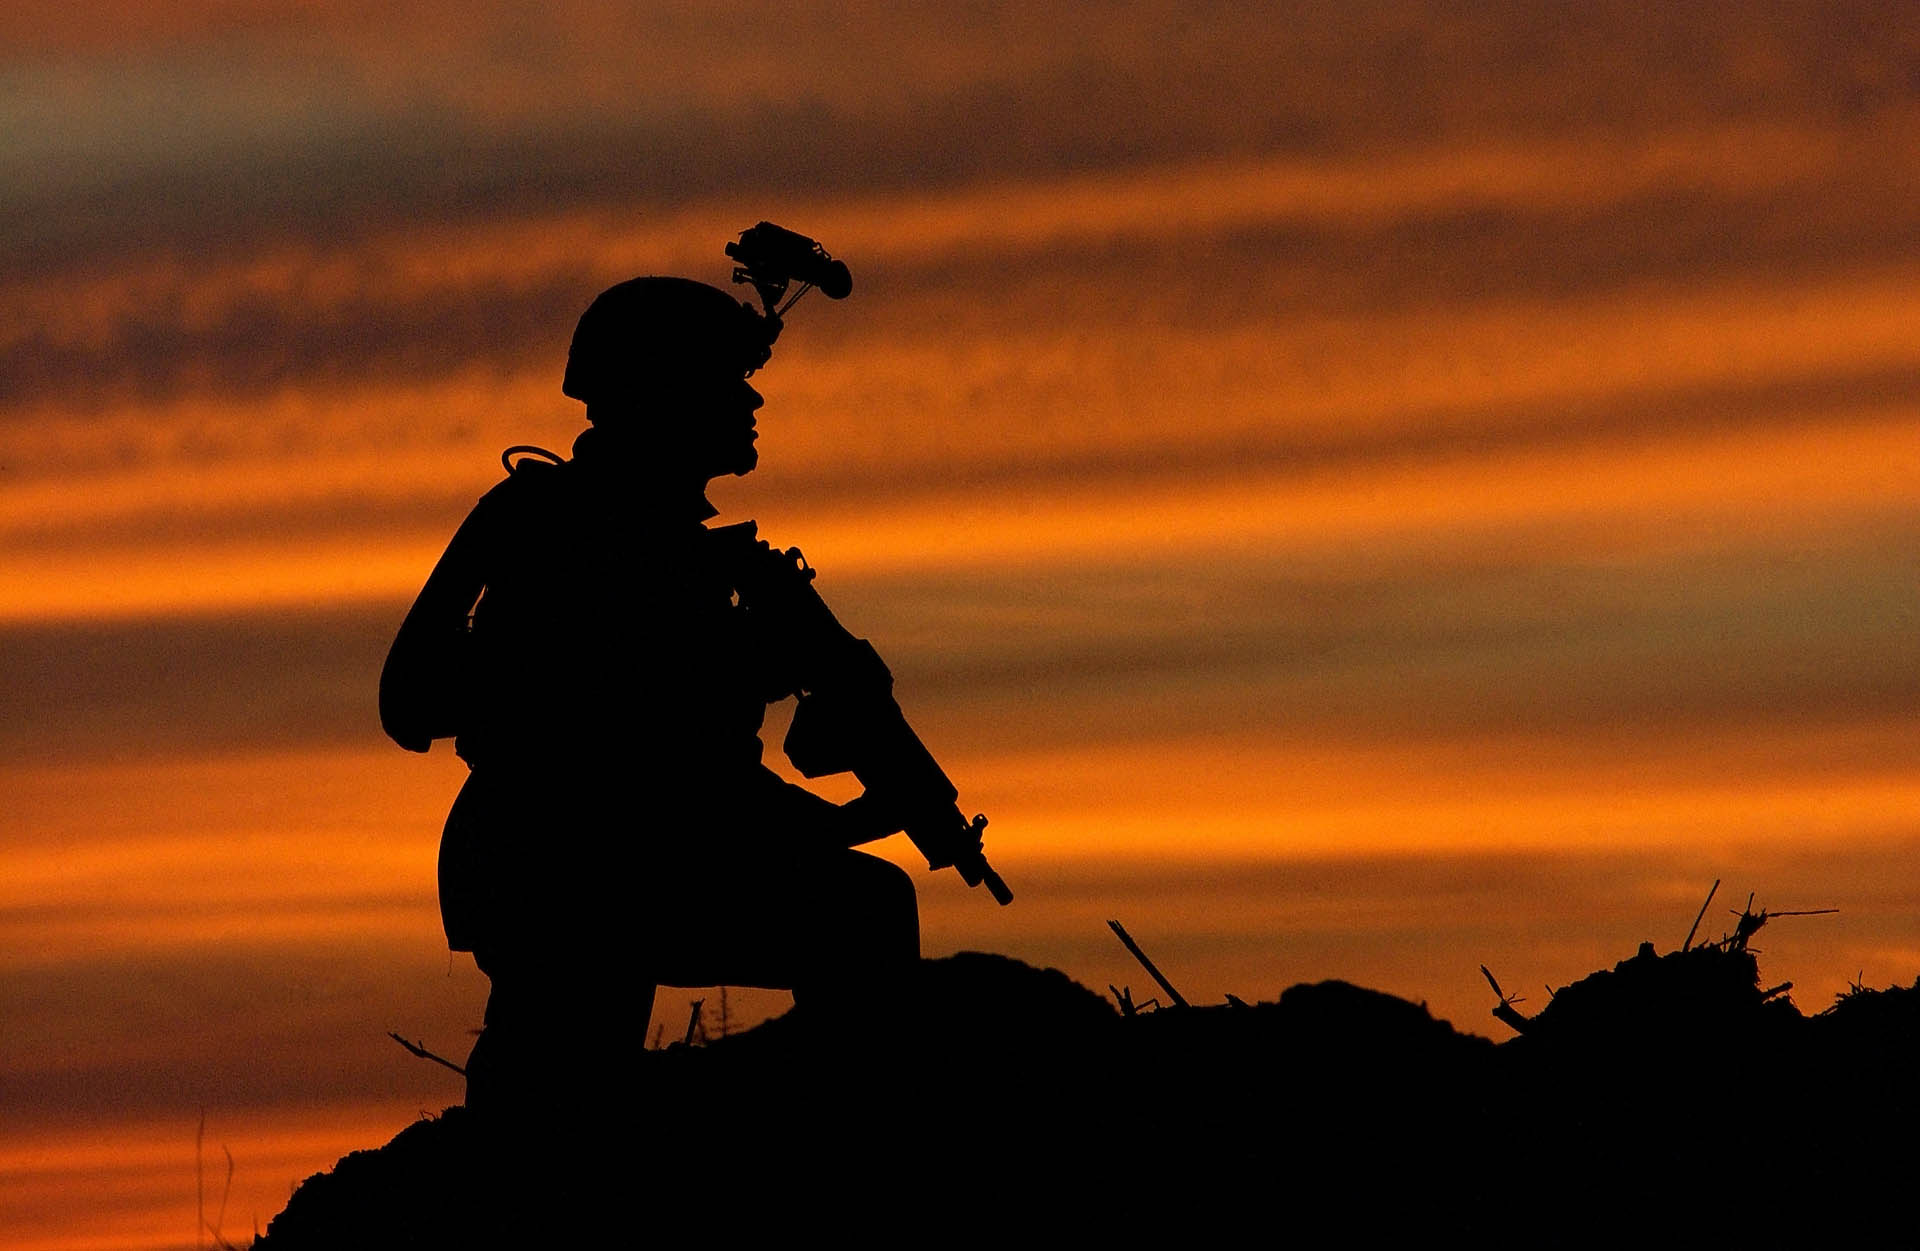 army wallpaper1 Best Army Silhouetted Wallpapers